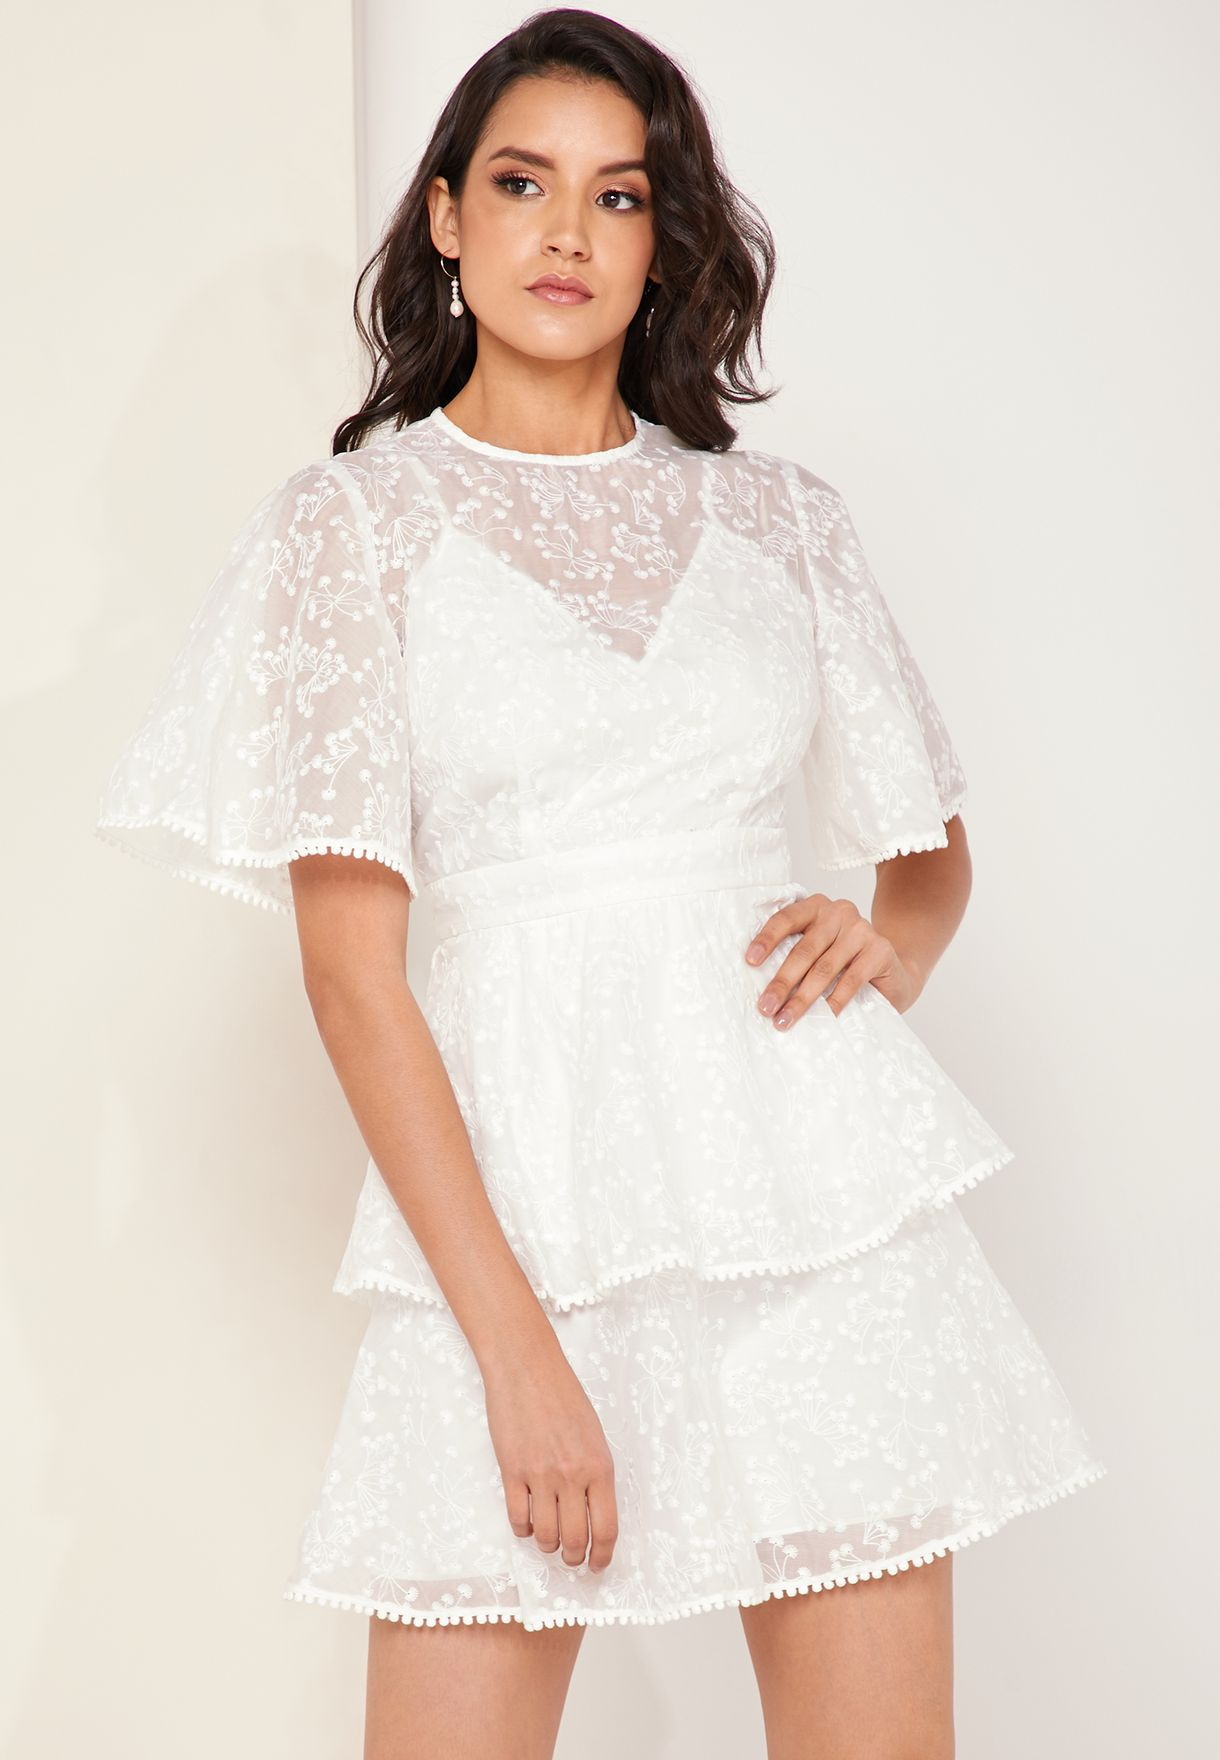 Wild Love Lace Detail Layered Short Sleeve Dress